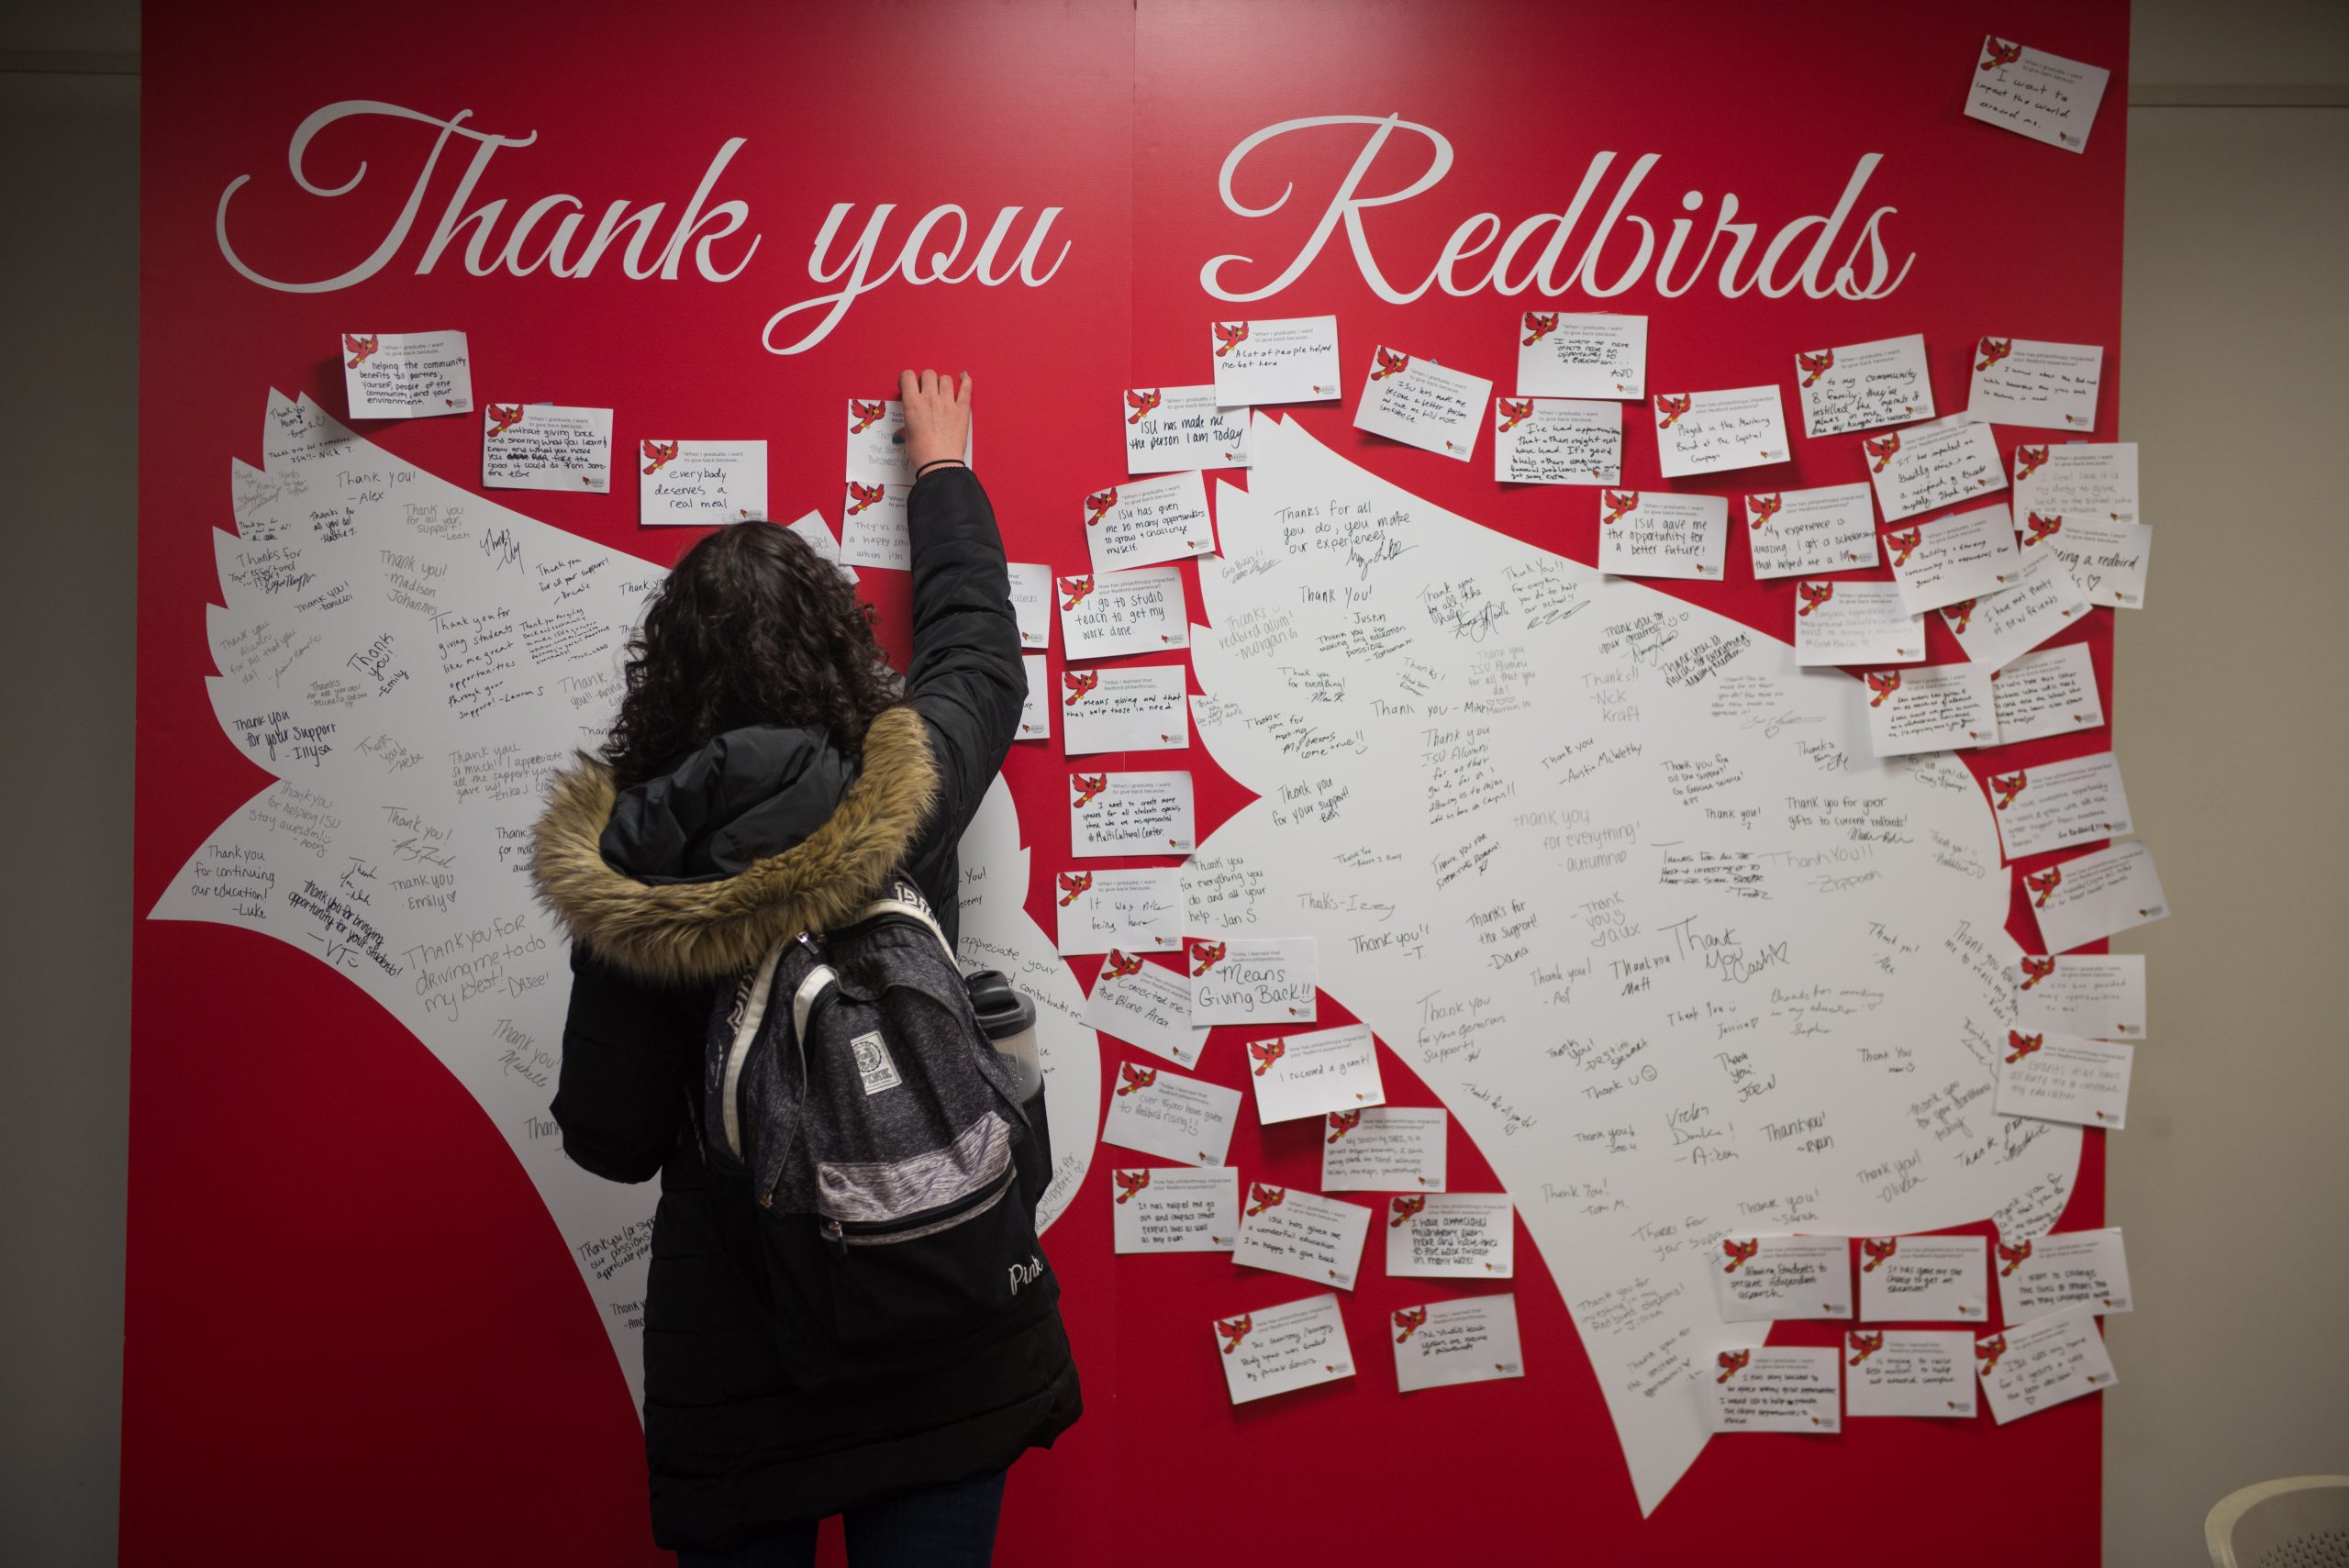 Student writes thank you message to donors during Redbird Philanthropy Week